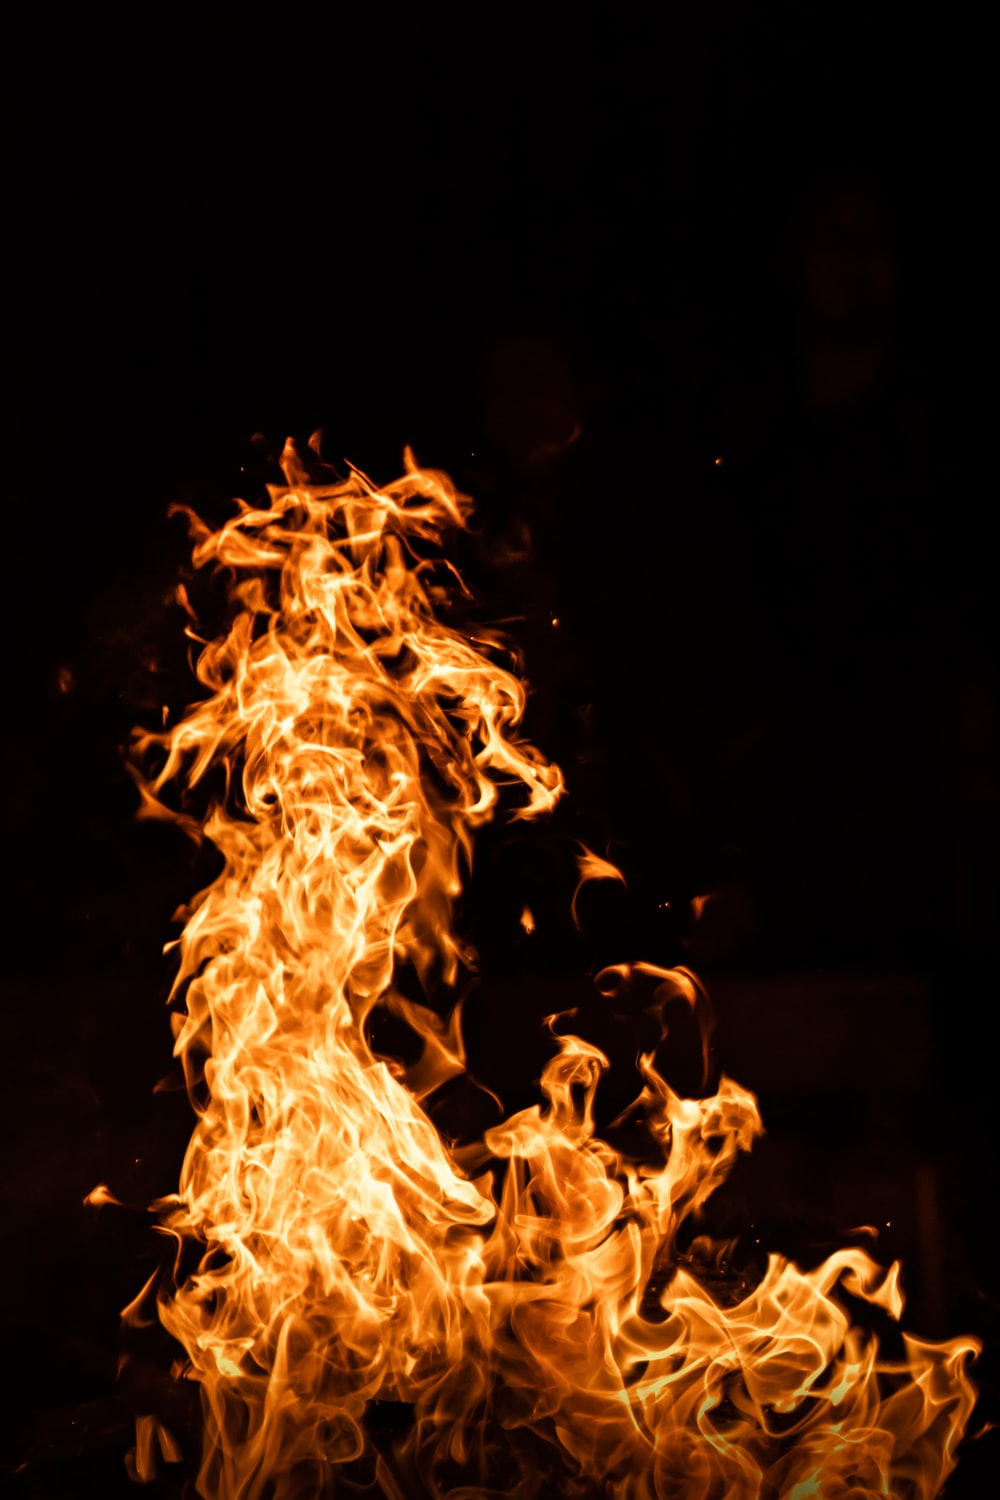 fire in the dark during night time